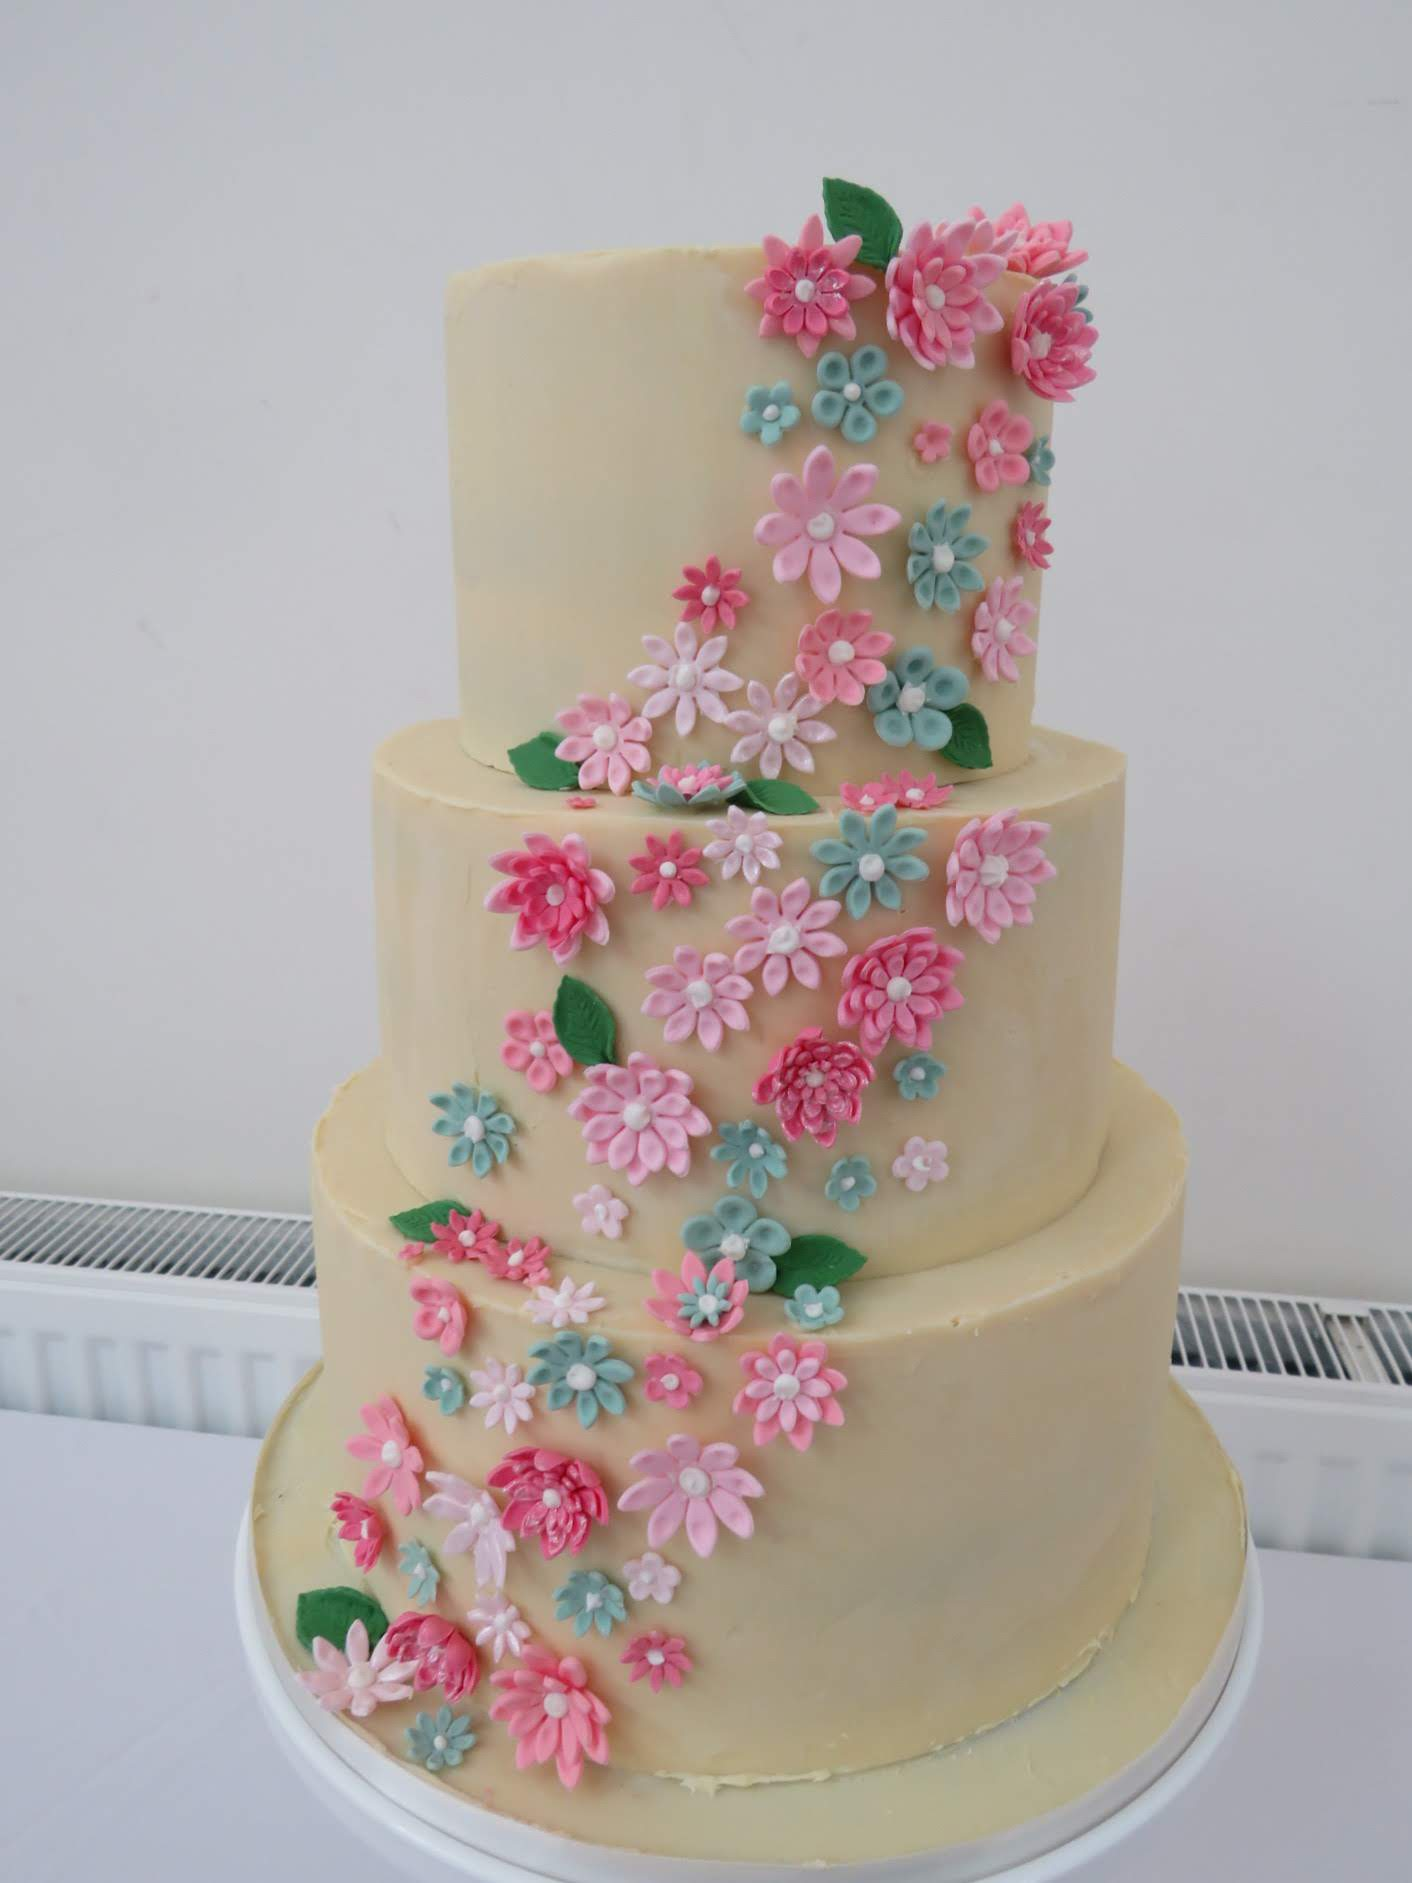 3 tier buttercream wedding cake with pink & green flowers down the front